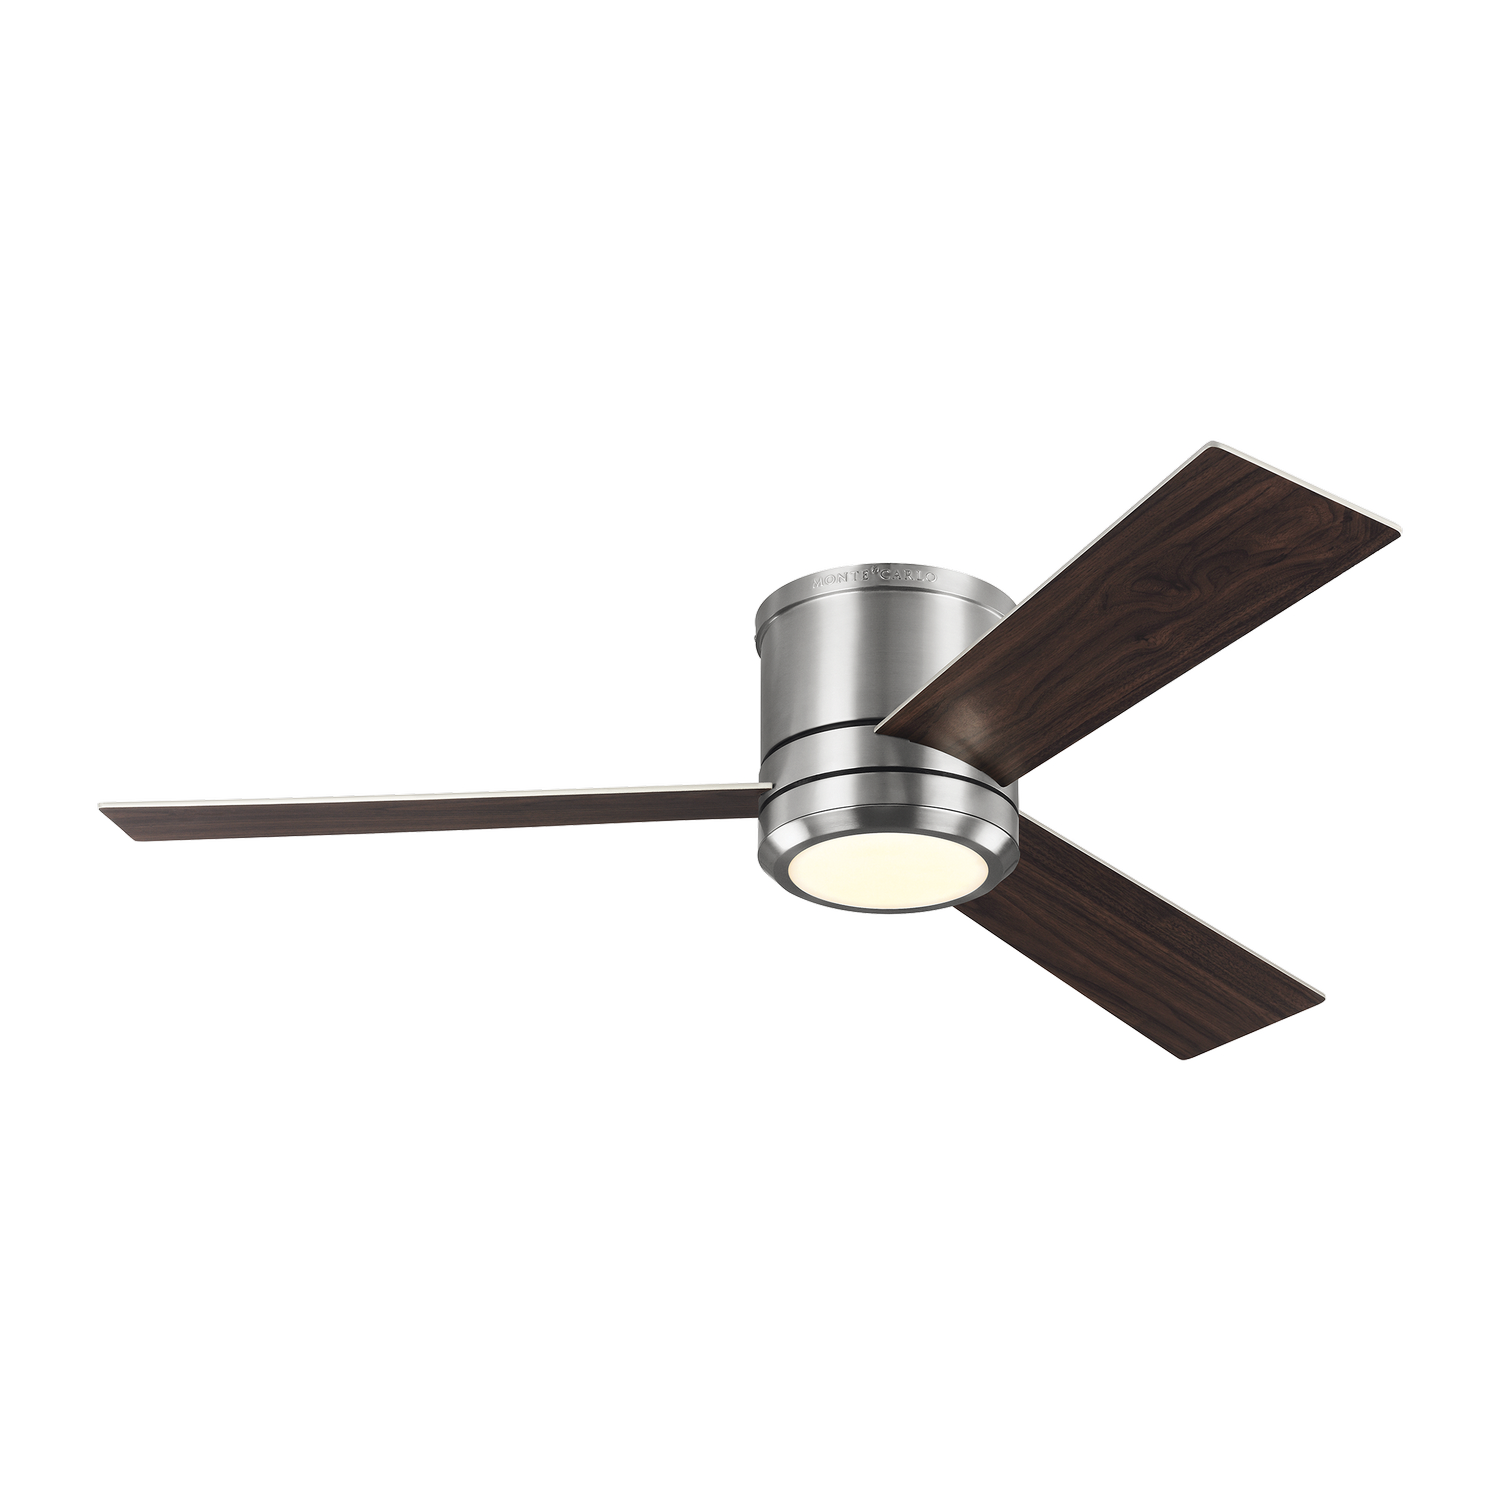 56 inchCeiling Fan from the Clarity Max collection by Monte Carlo 3CLMR56BSD V1